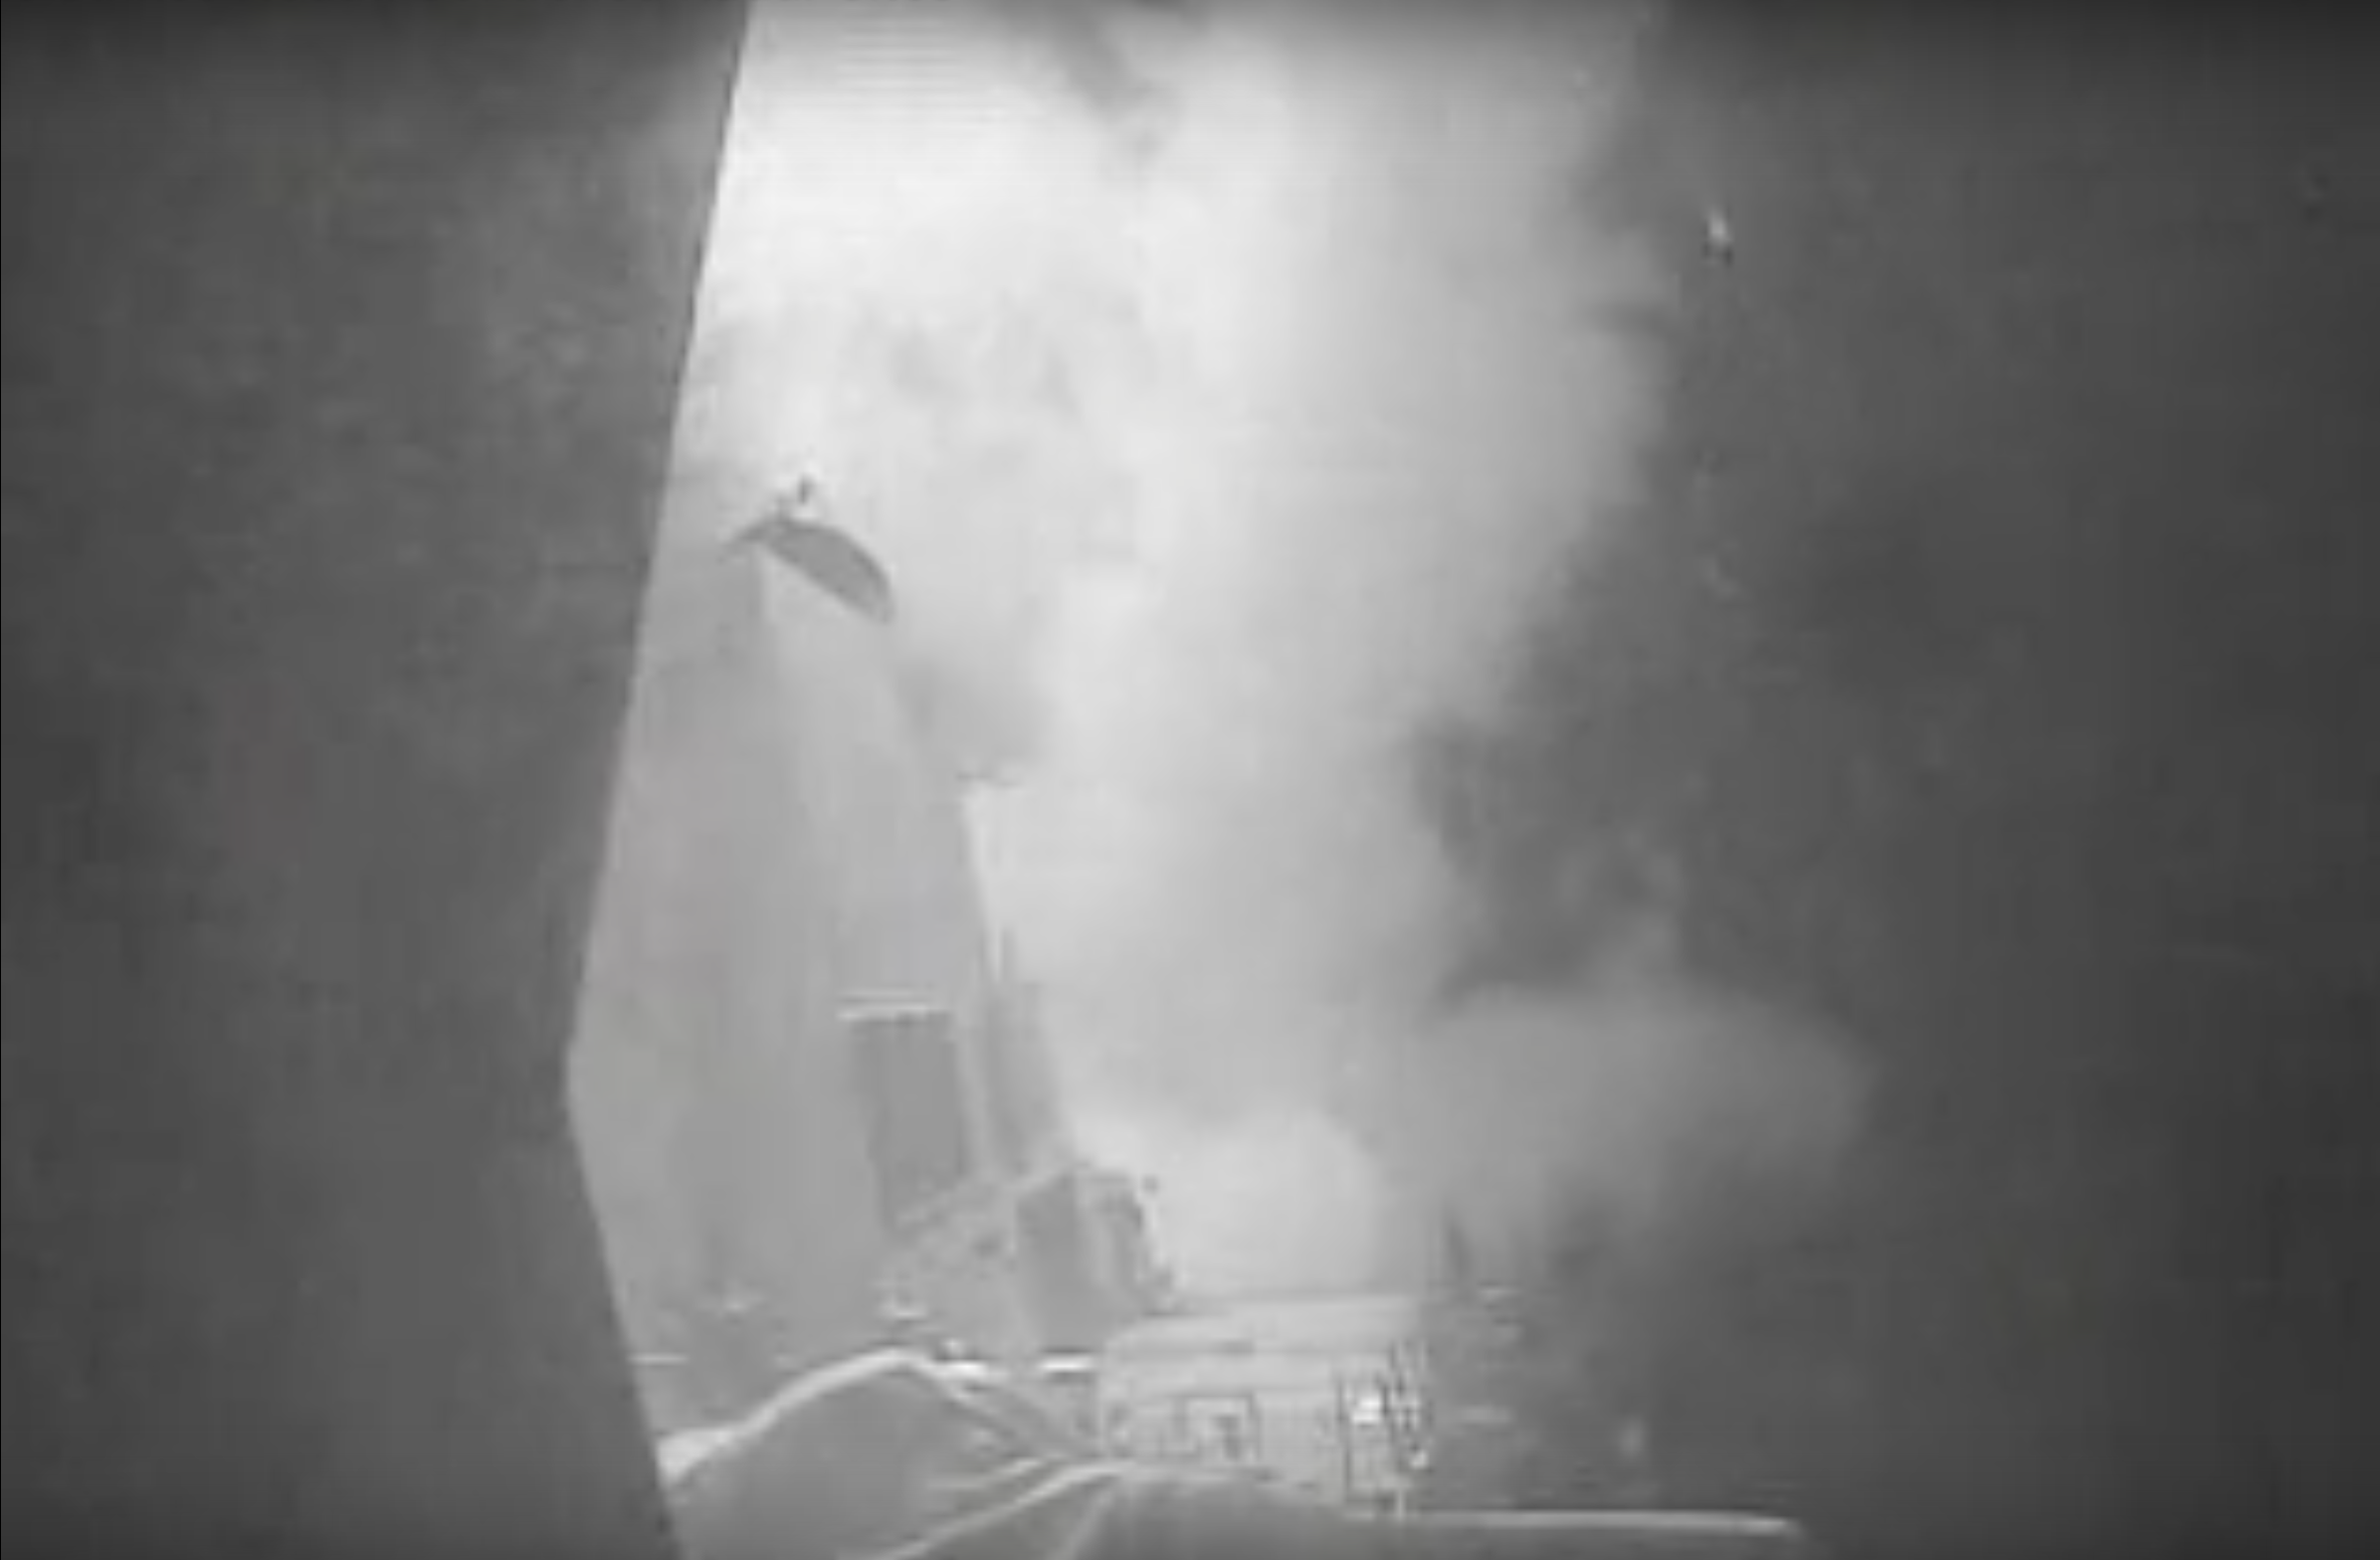 The destroyer USS Nitze launches a Tomahawk cruise missile against a radar site in Yemen.